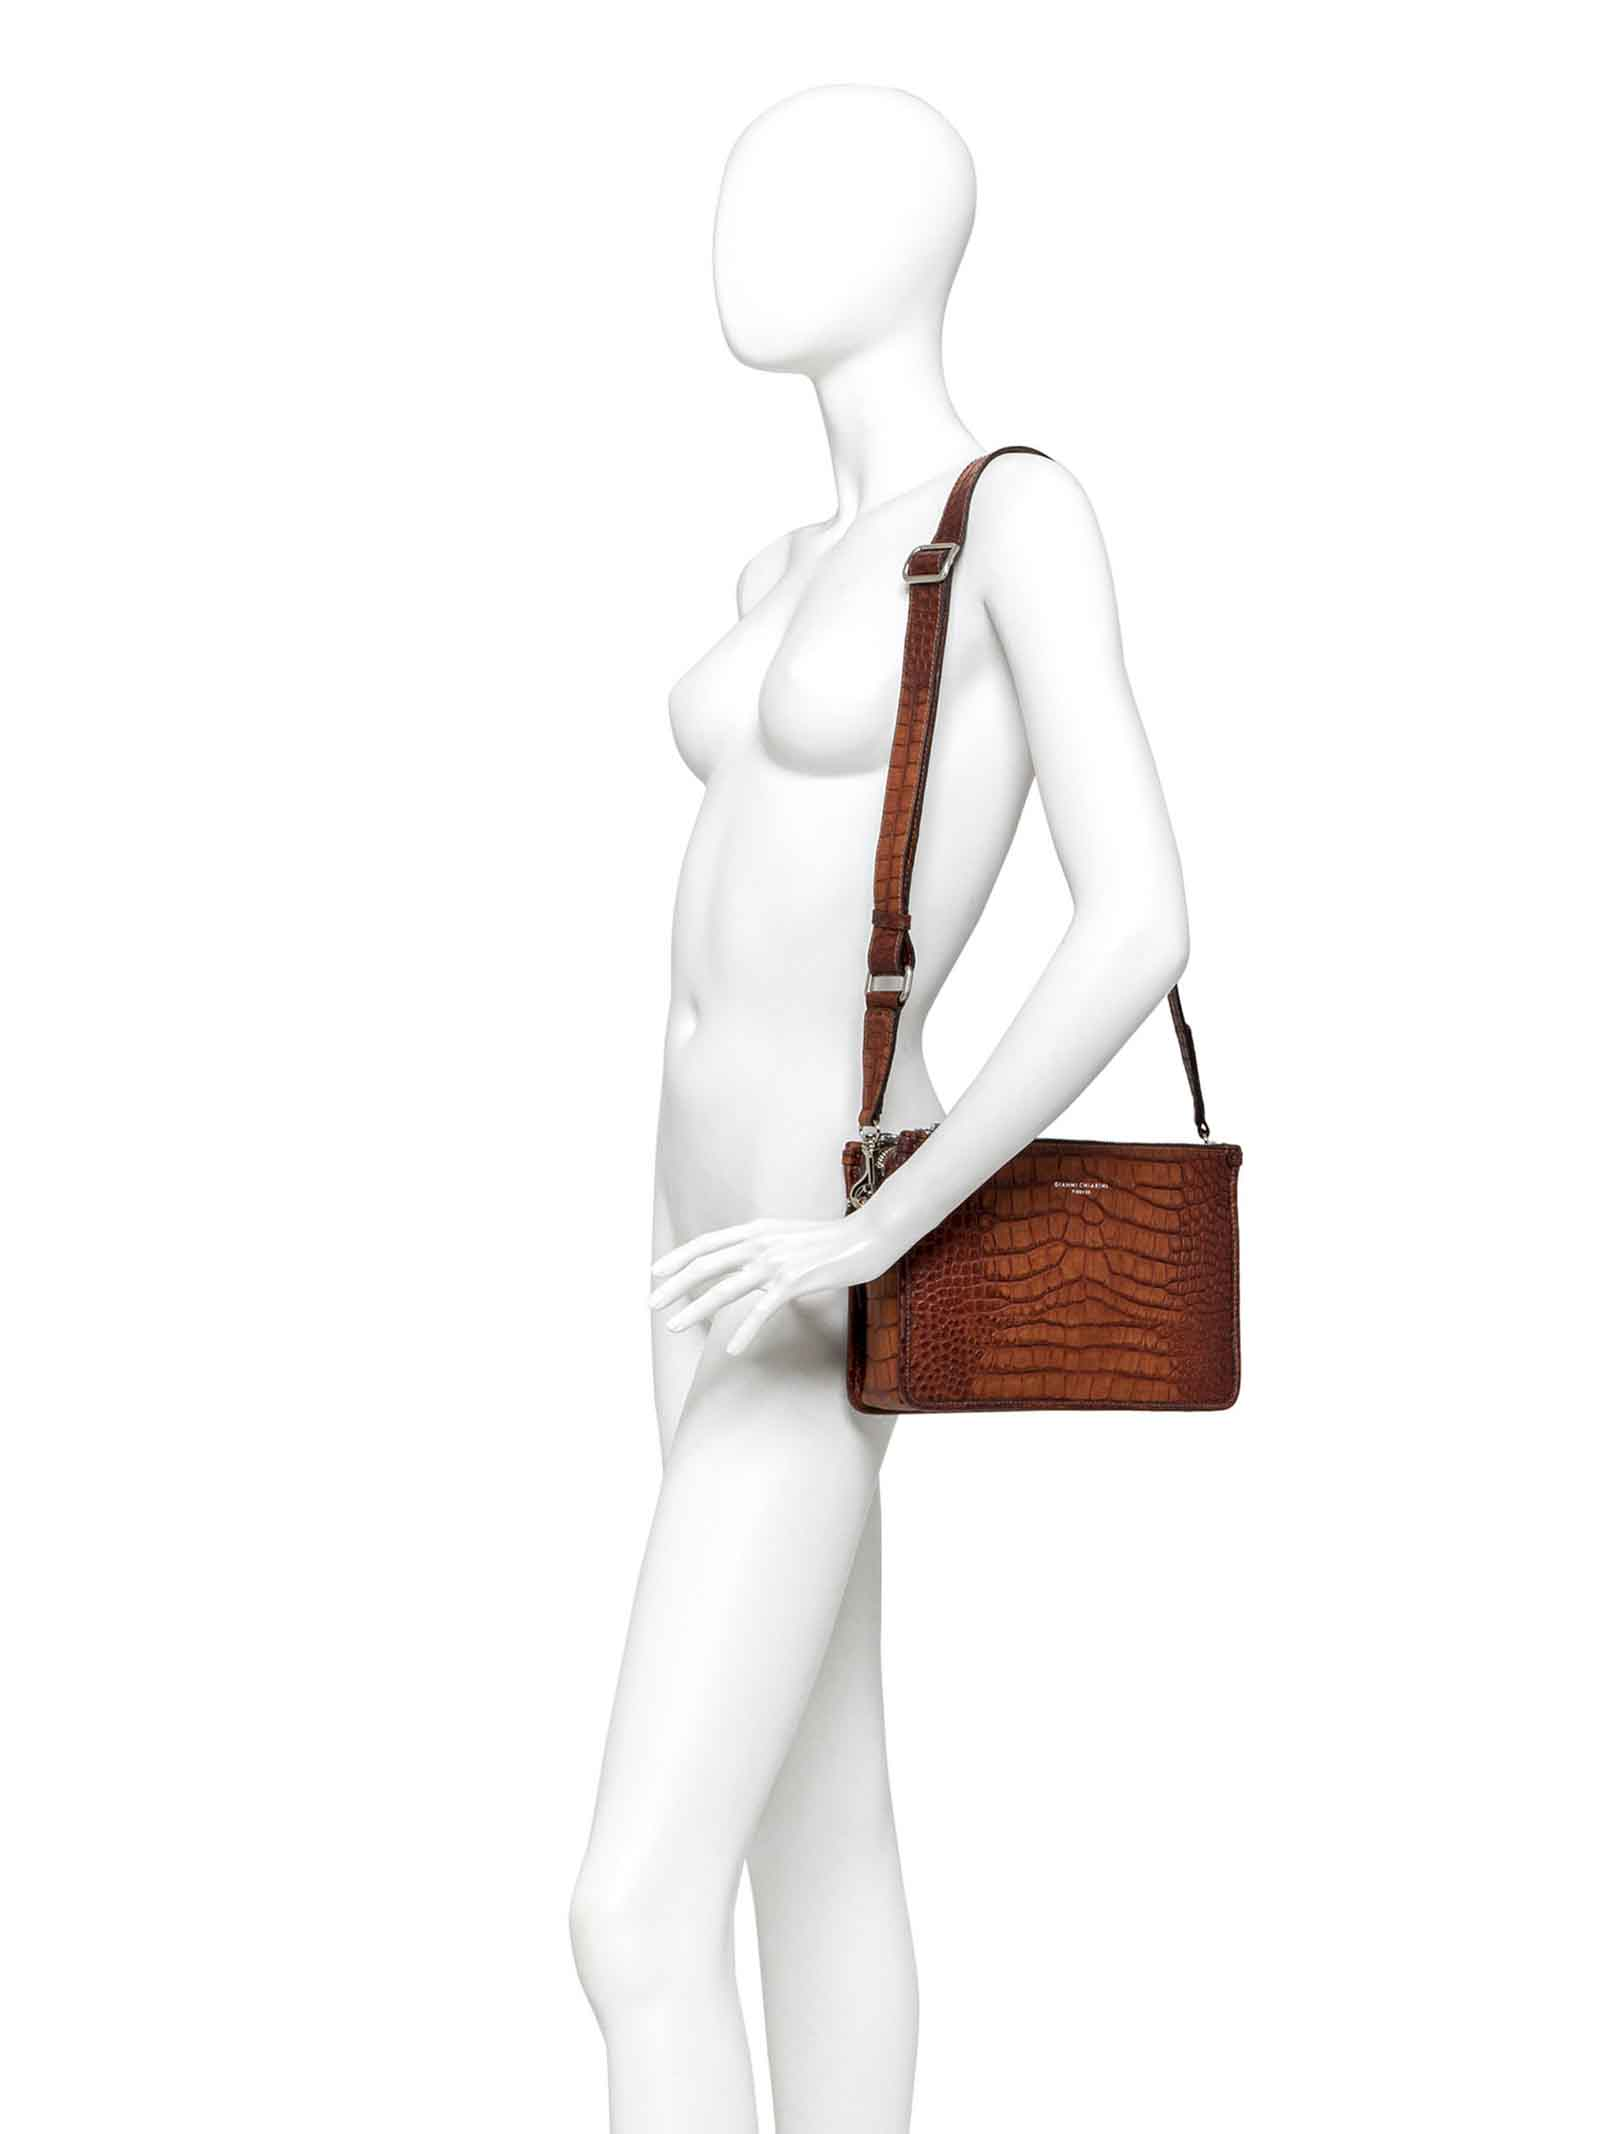 Women's Maxi Shoulder Bag Debbie in Coconut Tan Printed Leather with Adjustable Leather Strap Gianni Chiarini   Bags and backpacks   BS9381166